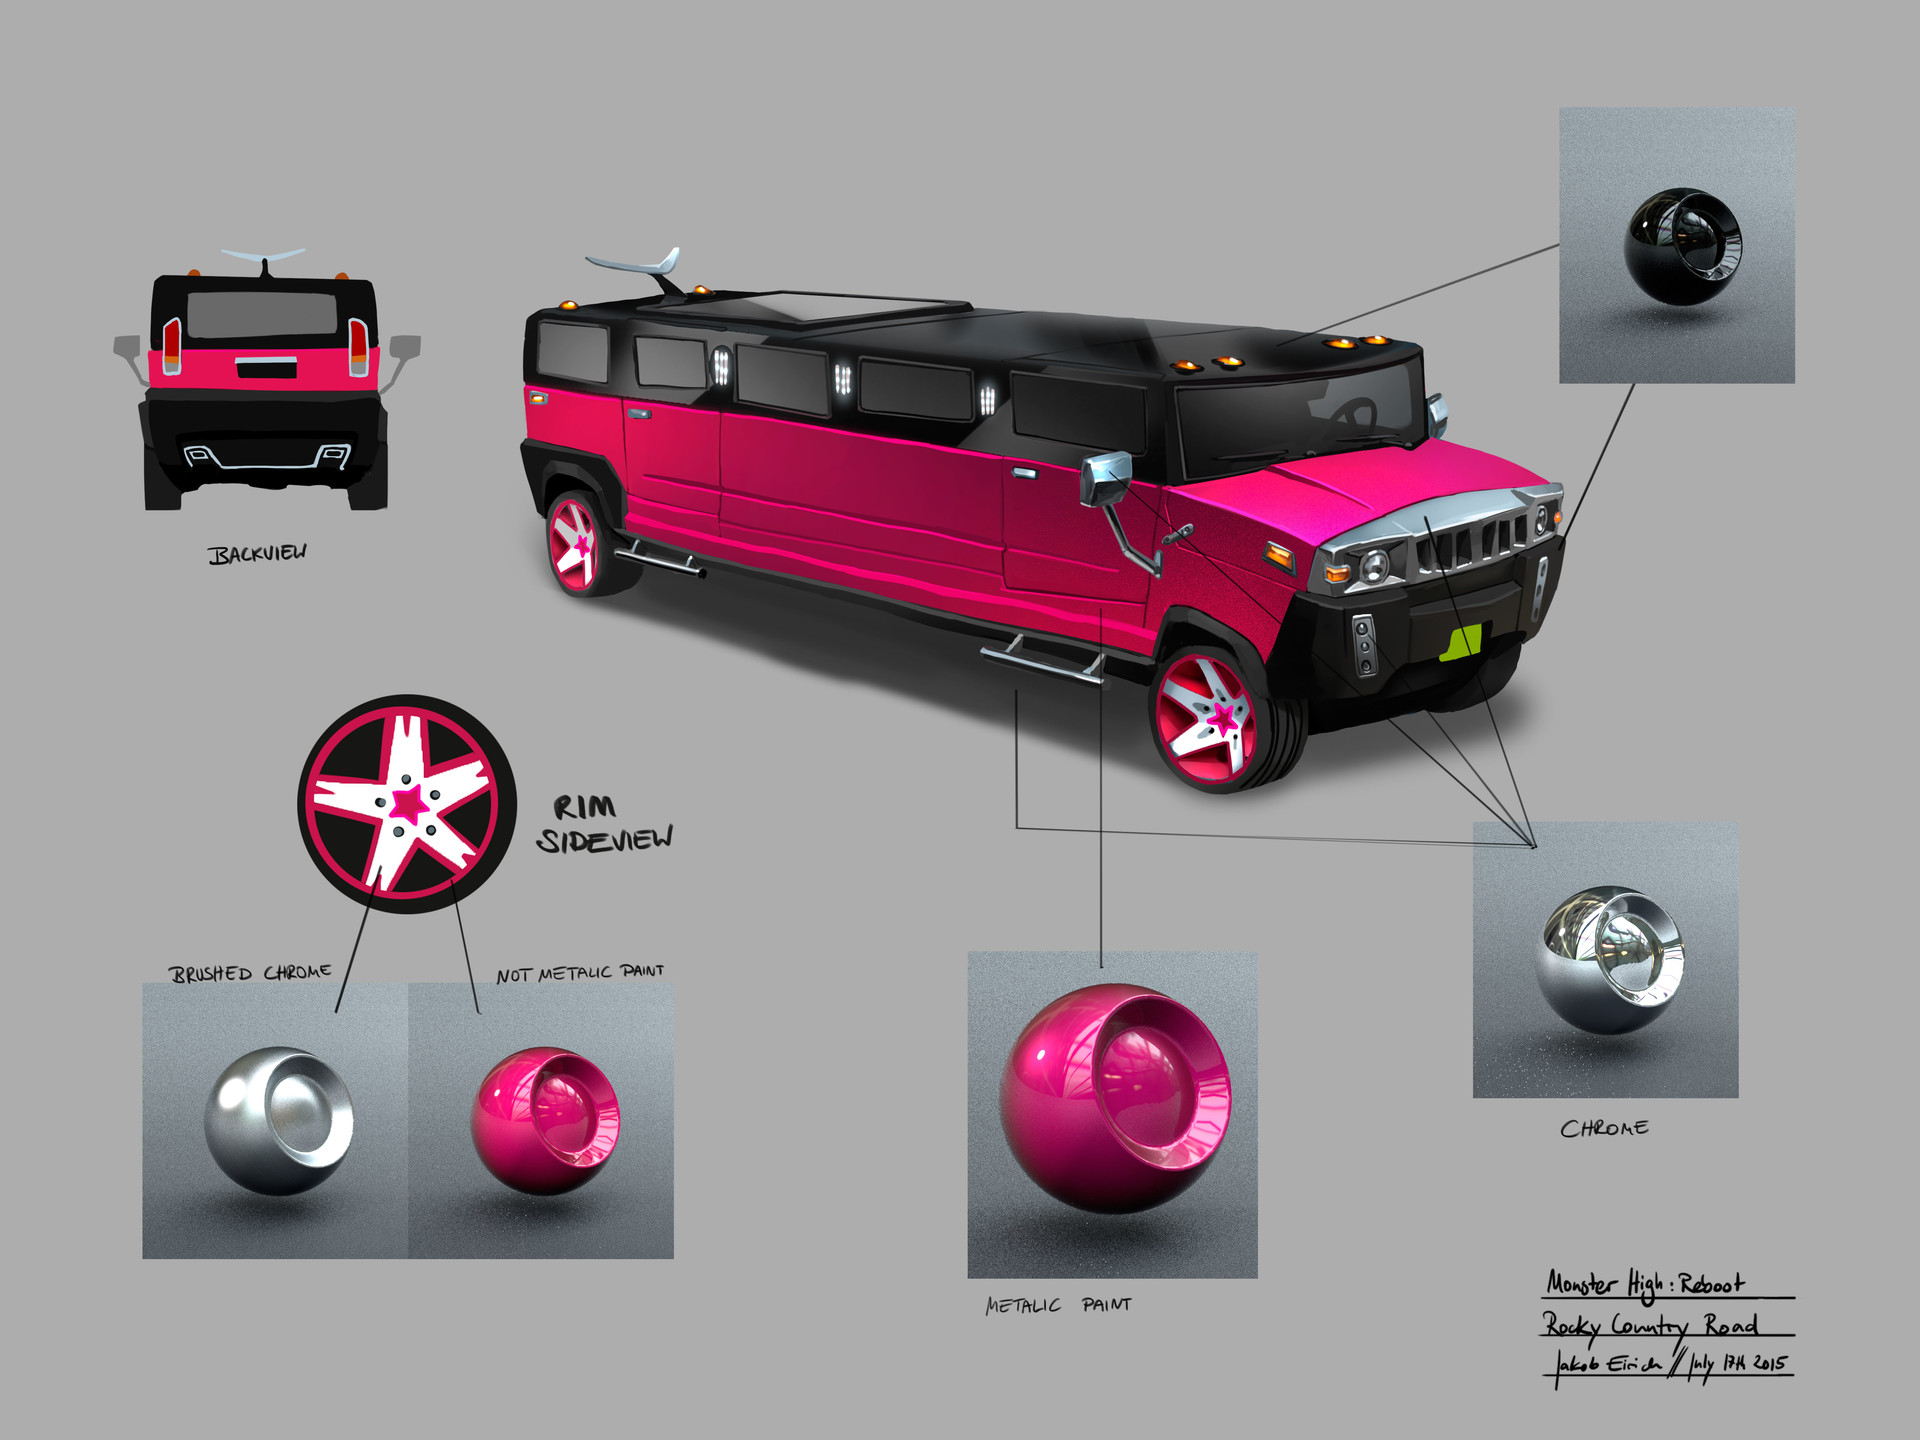 jakob-eirich-rocky-country-rox-props-hummer-2